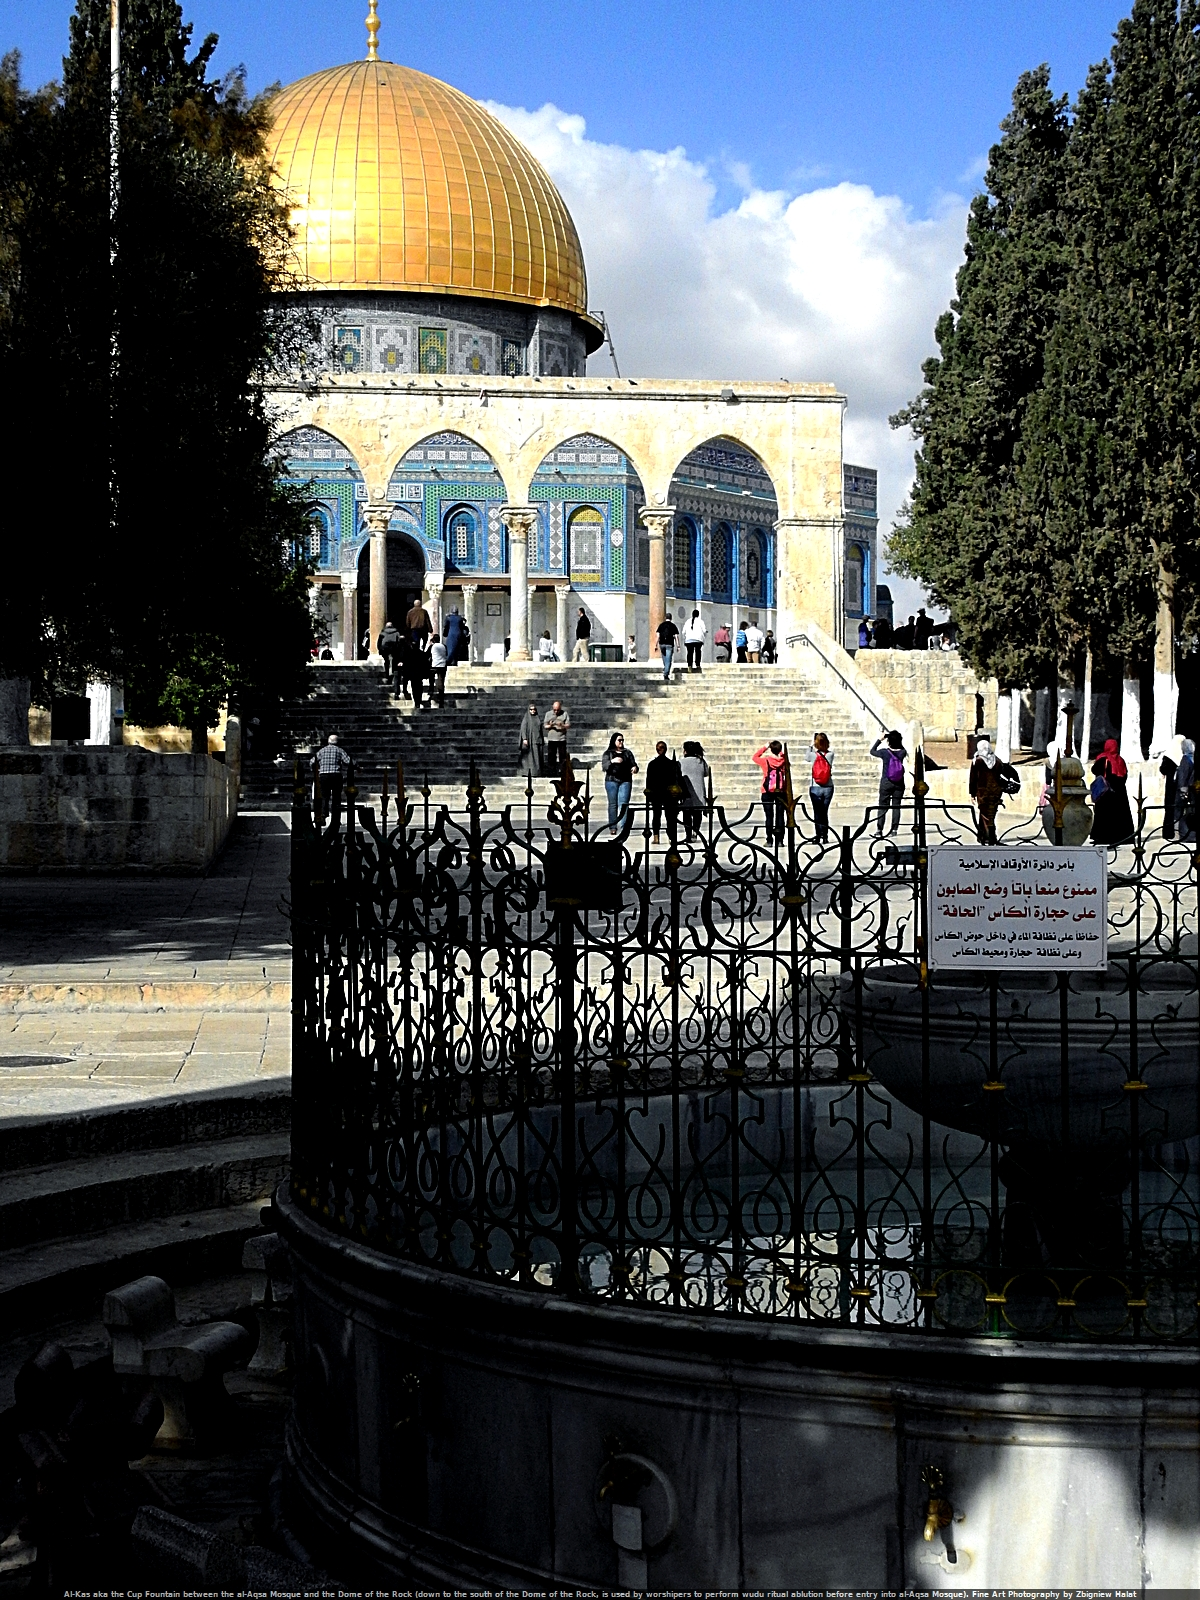 Al-Kas aka the Cup Fountain between the al-Aqsa Mosque and the Dome of the Rock (down to the south of the Dome of the Rock, is used by worshipers to perform wudu ritual ablution before entry into al-Aqsa Mosque). Fine Art Photography by Zbigniew Halat